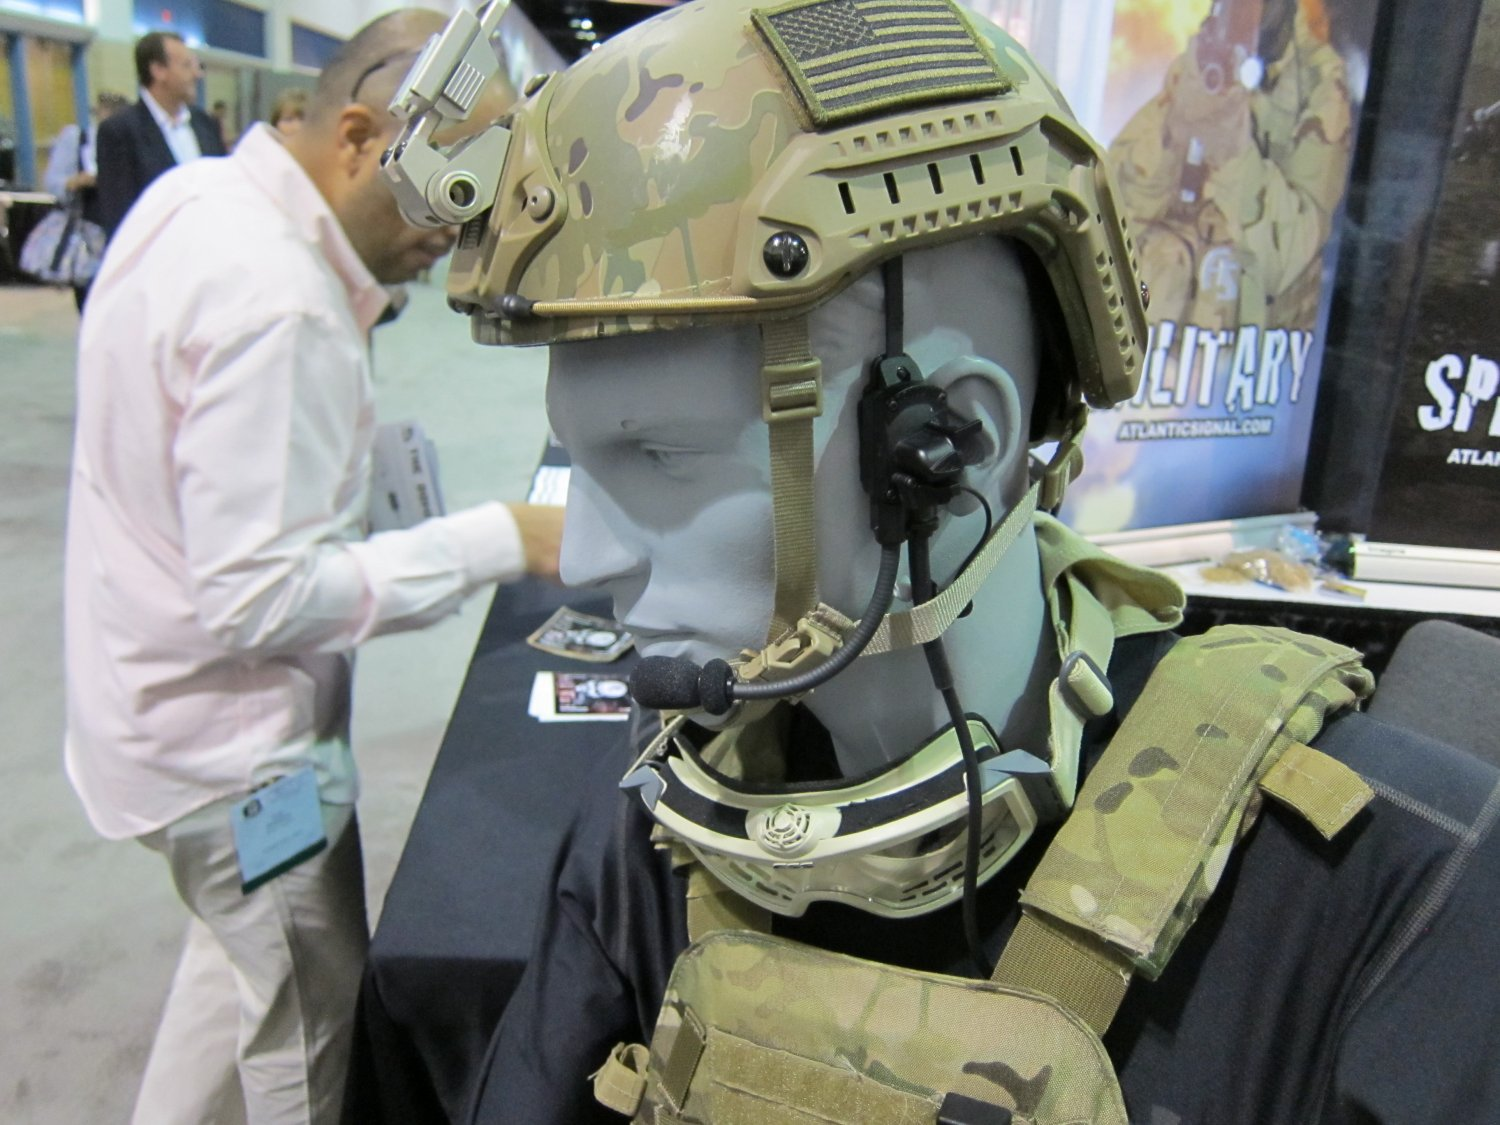 Syrian Armed Forces (Photos, Video) - Page 4 Atlantic_Signal_Dominator_Waterproof_Bone_Conduction_Hearing_Pro_Tactical_Comms_Headset_and_Ops-Core_SPECOPS_Combat_Helmet_SOFIC_2011_2